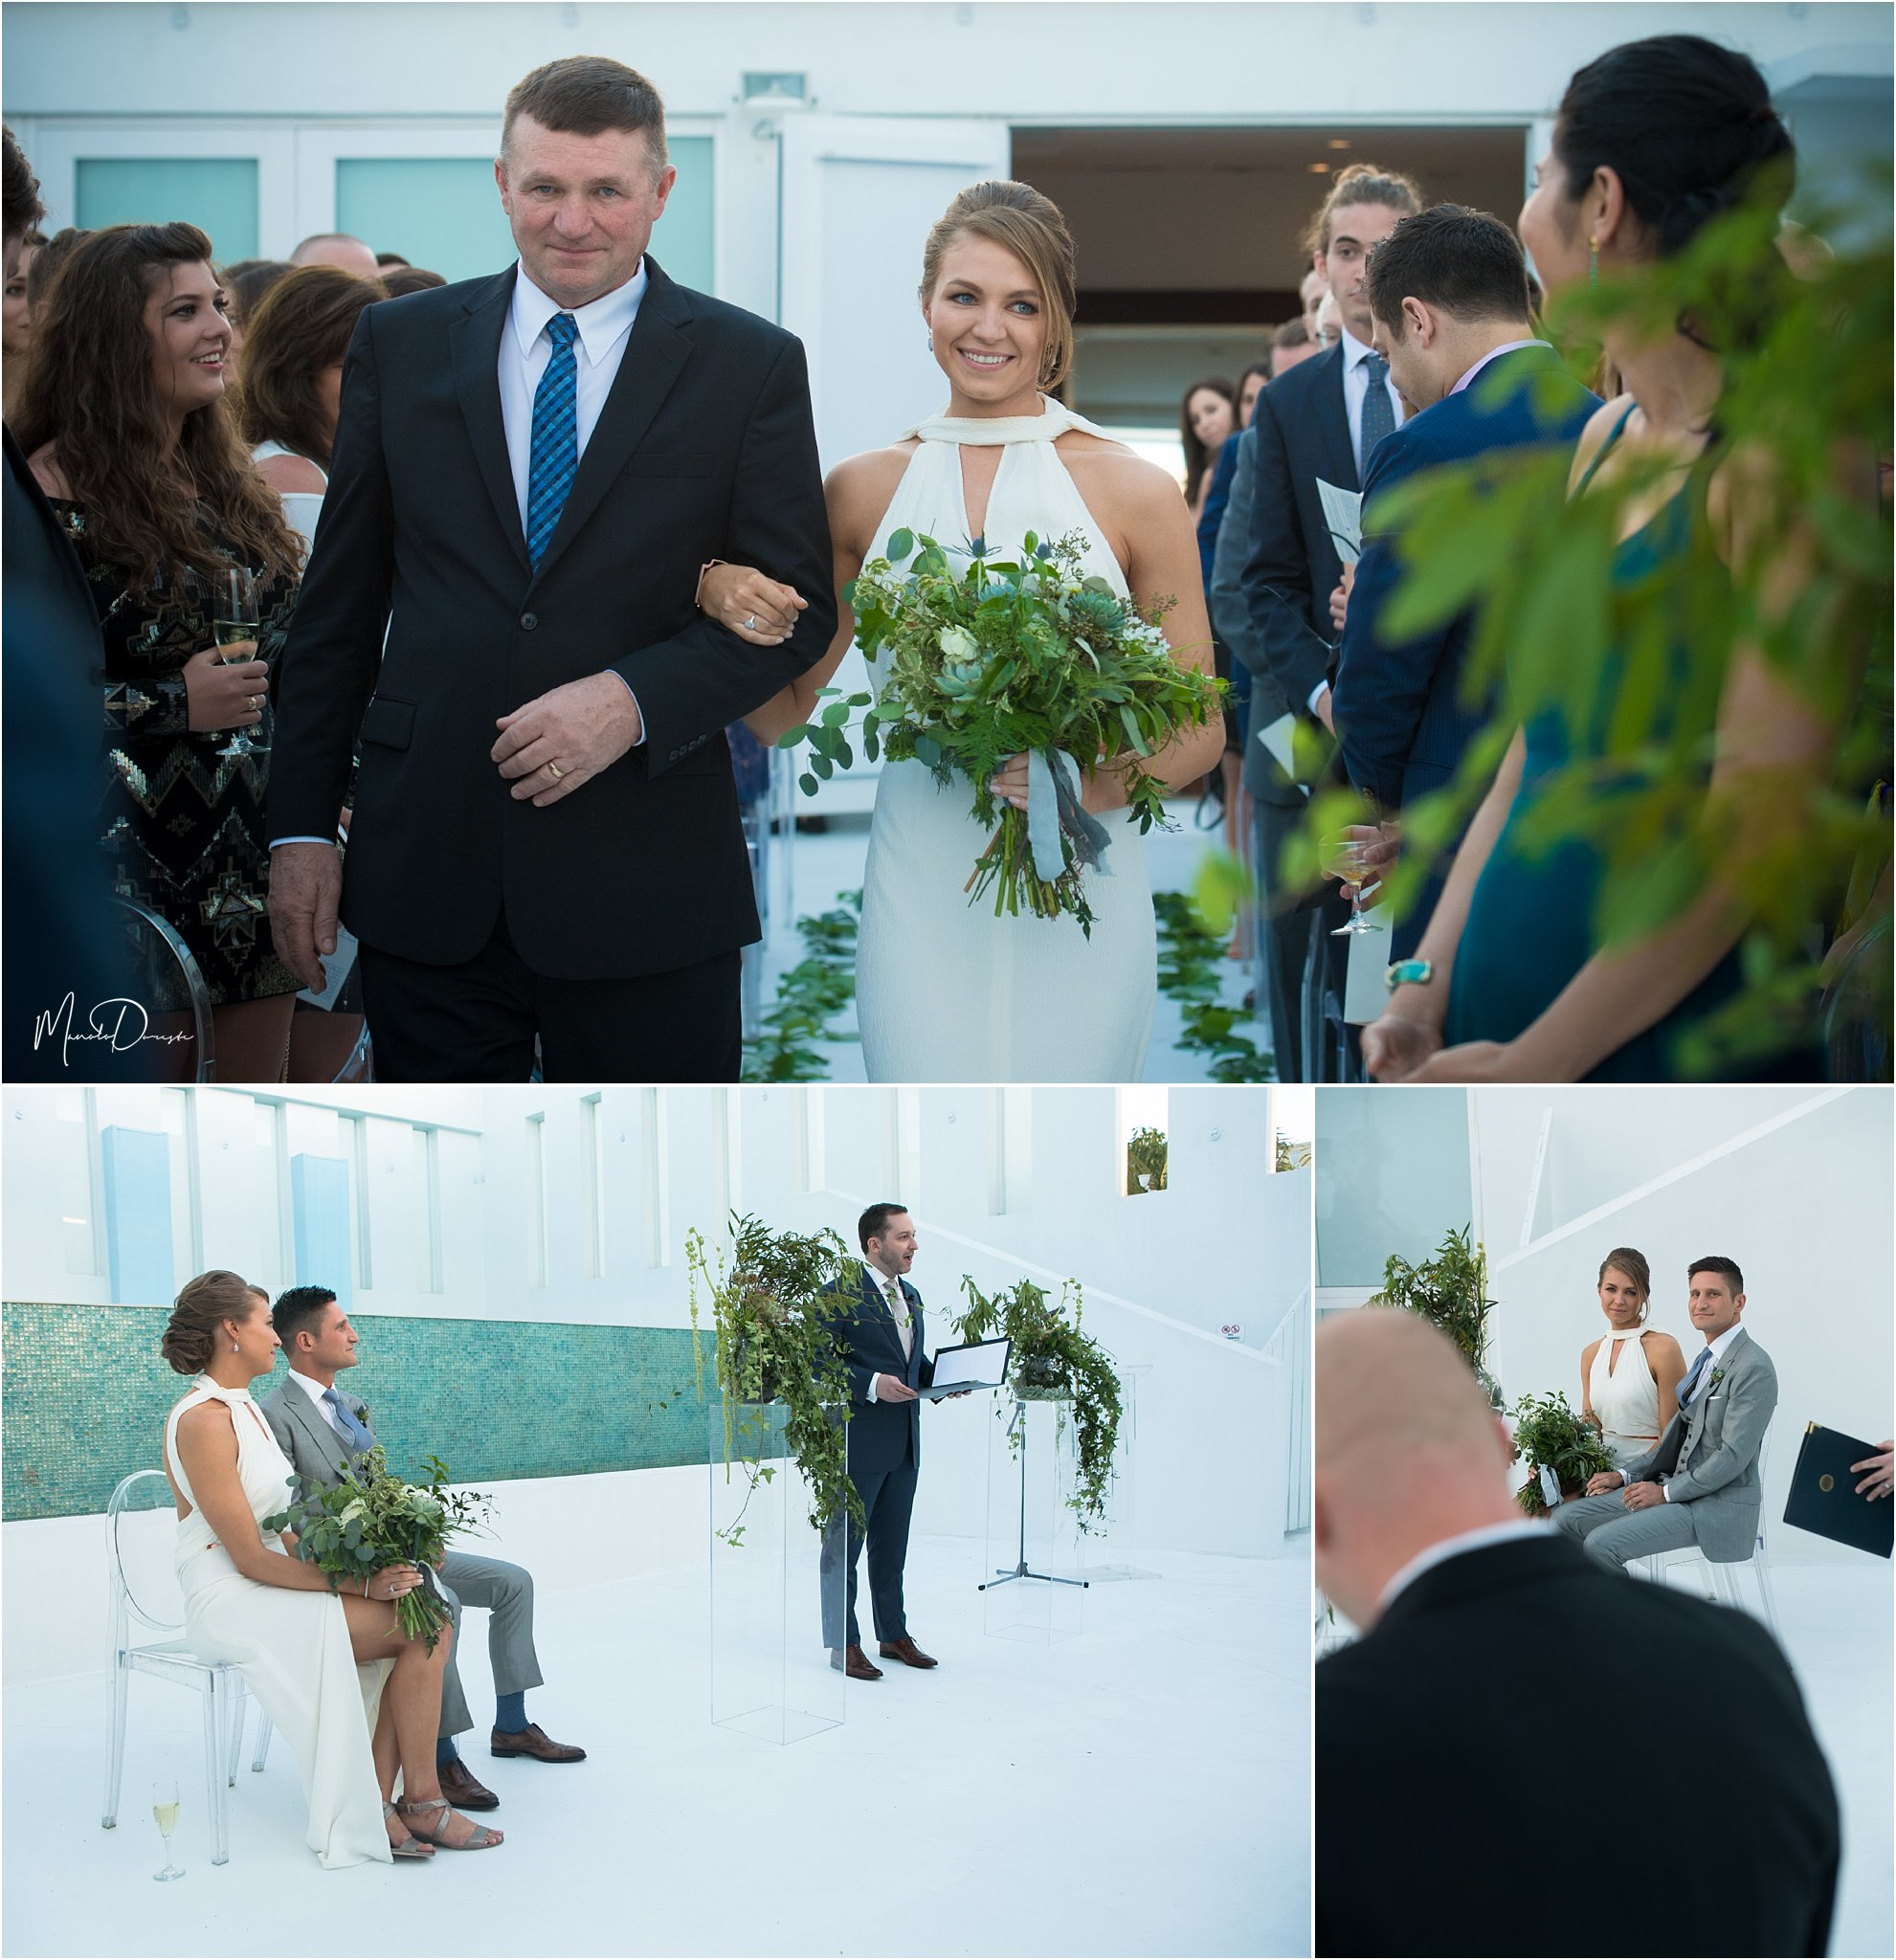 00915_ManoloDoreste_InFocusStudios_Wedding_Family_Photography_Miami_MiamiPhotographer.jpg